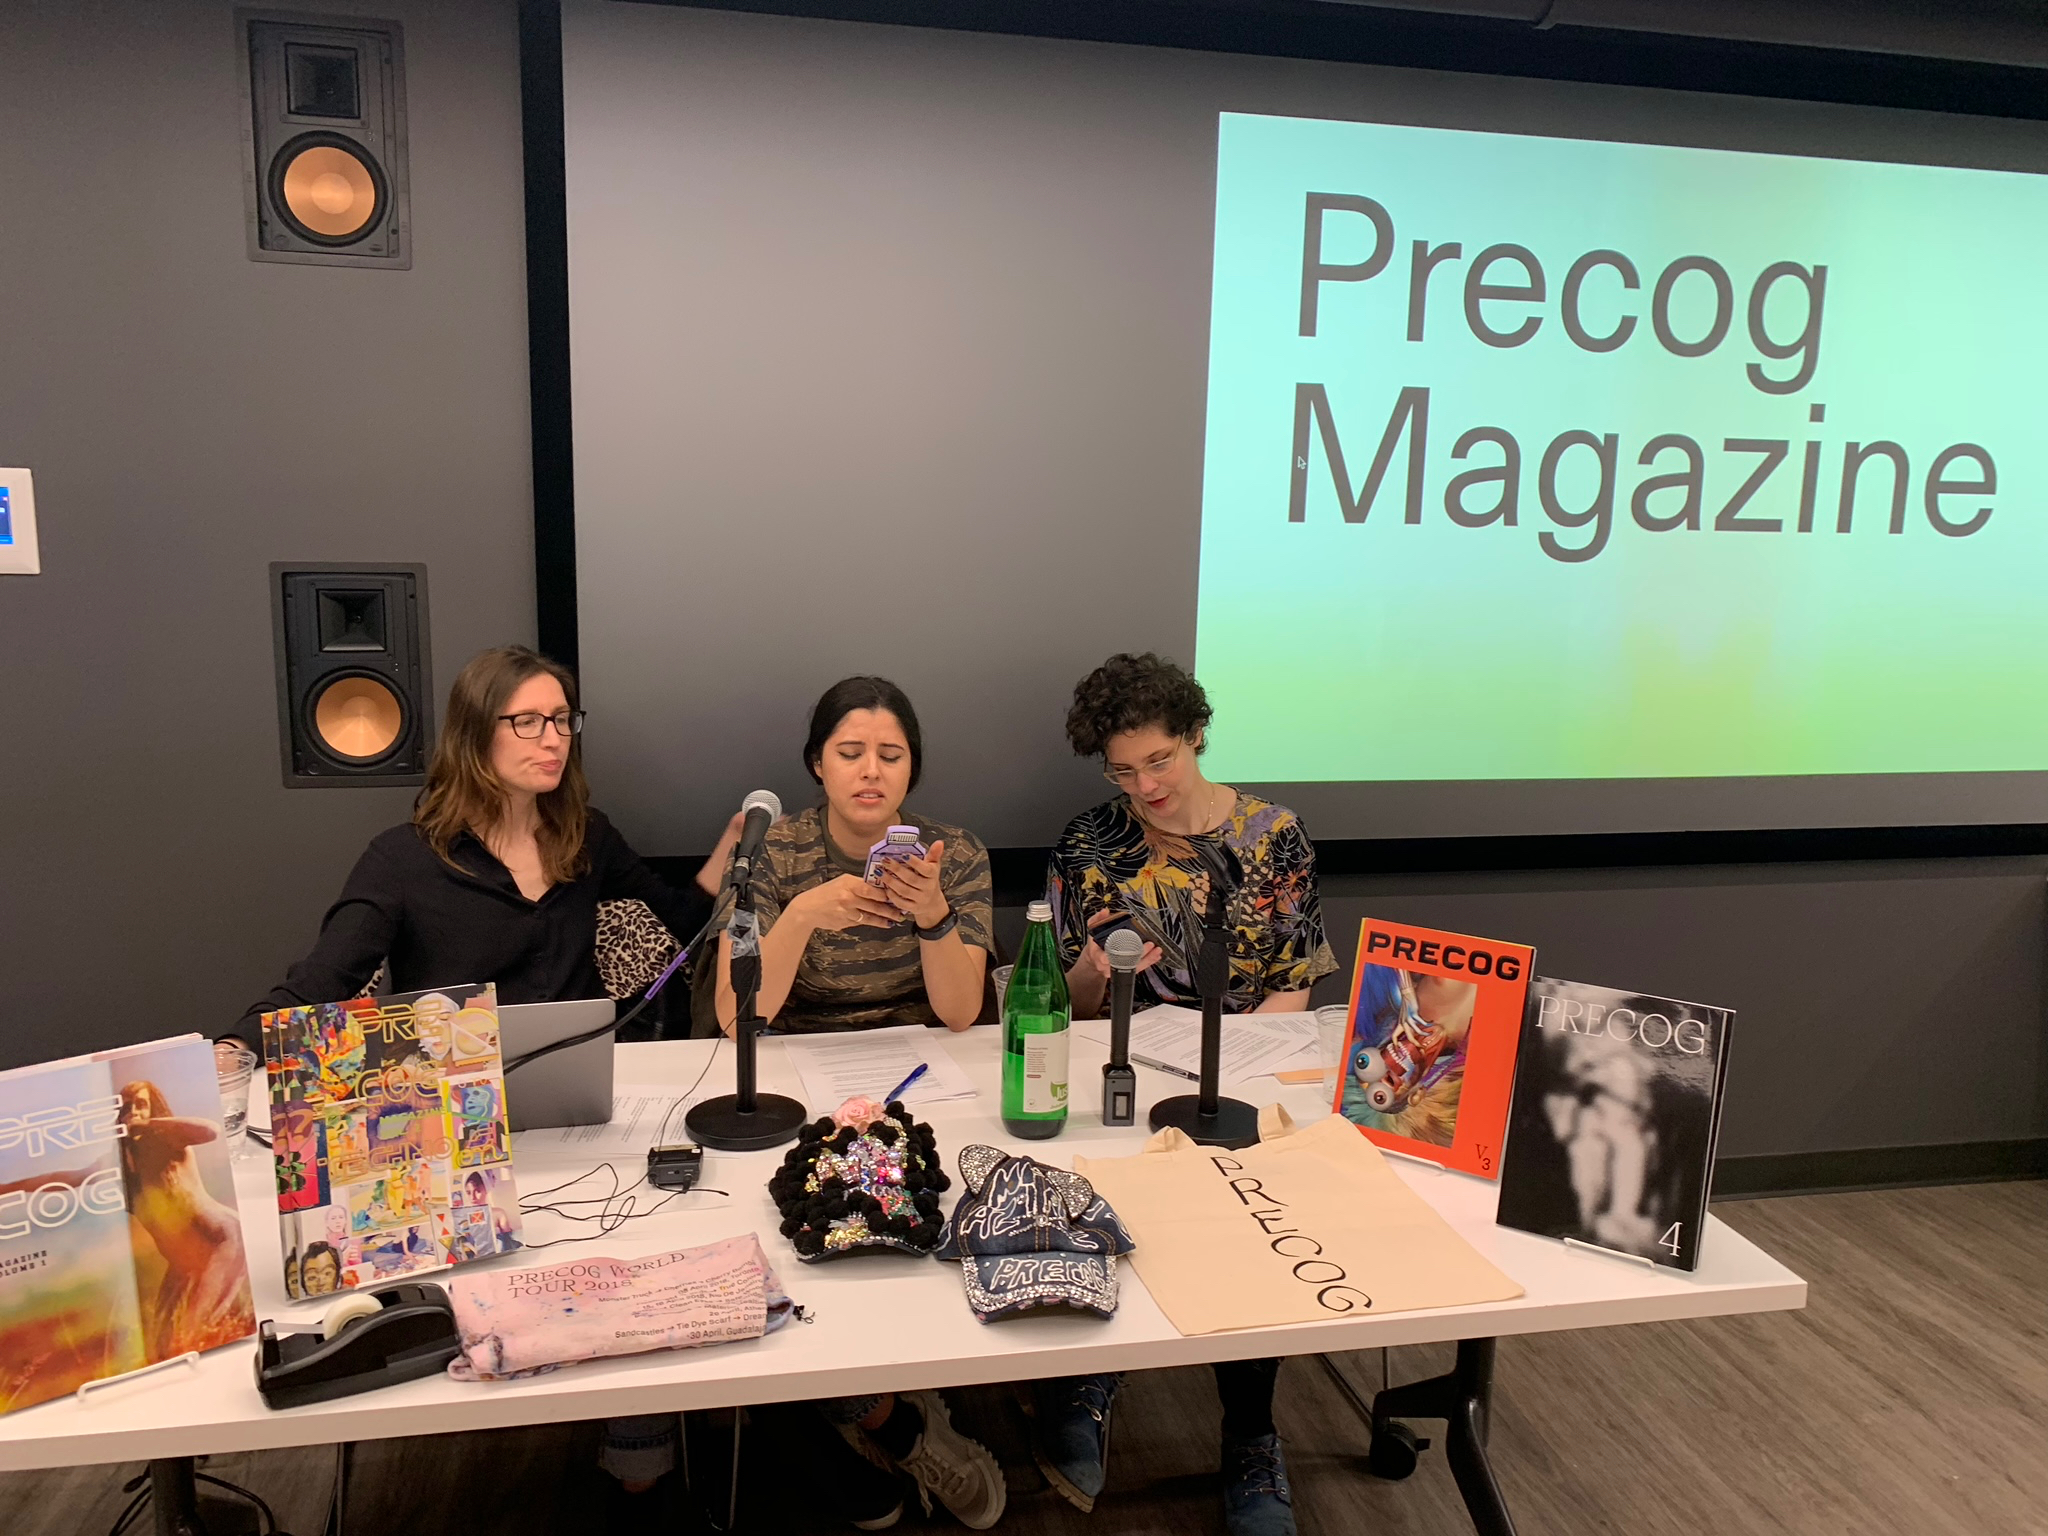 Pre Cog Mag in the Library - Photo from a panel featuring the women of Pre Cog Magazine on how to make your own magazine at the SVA Library.